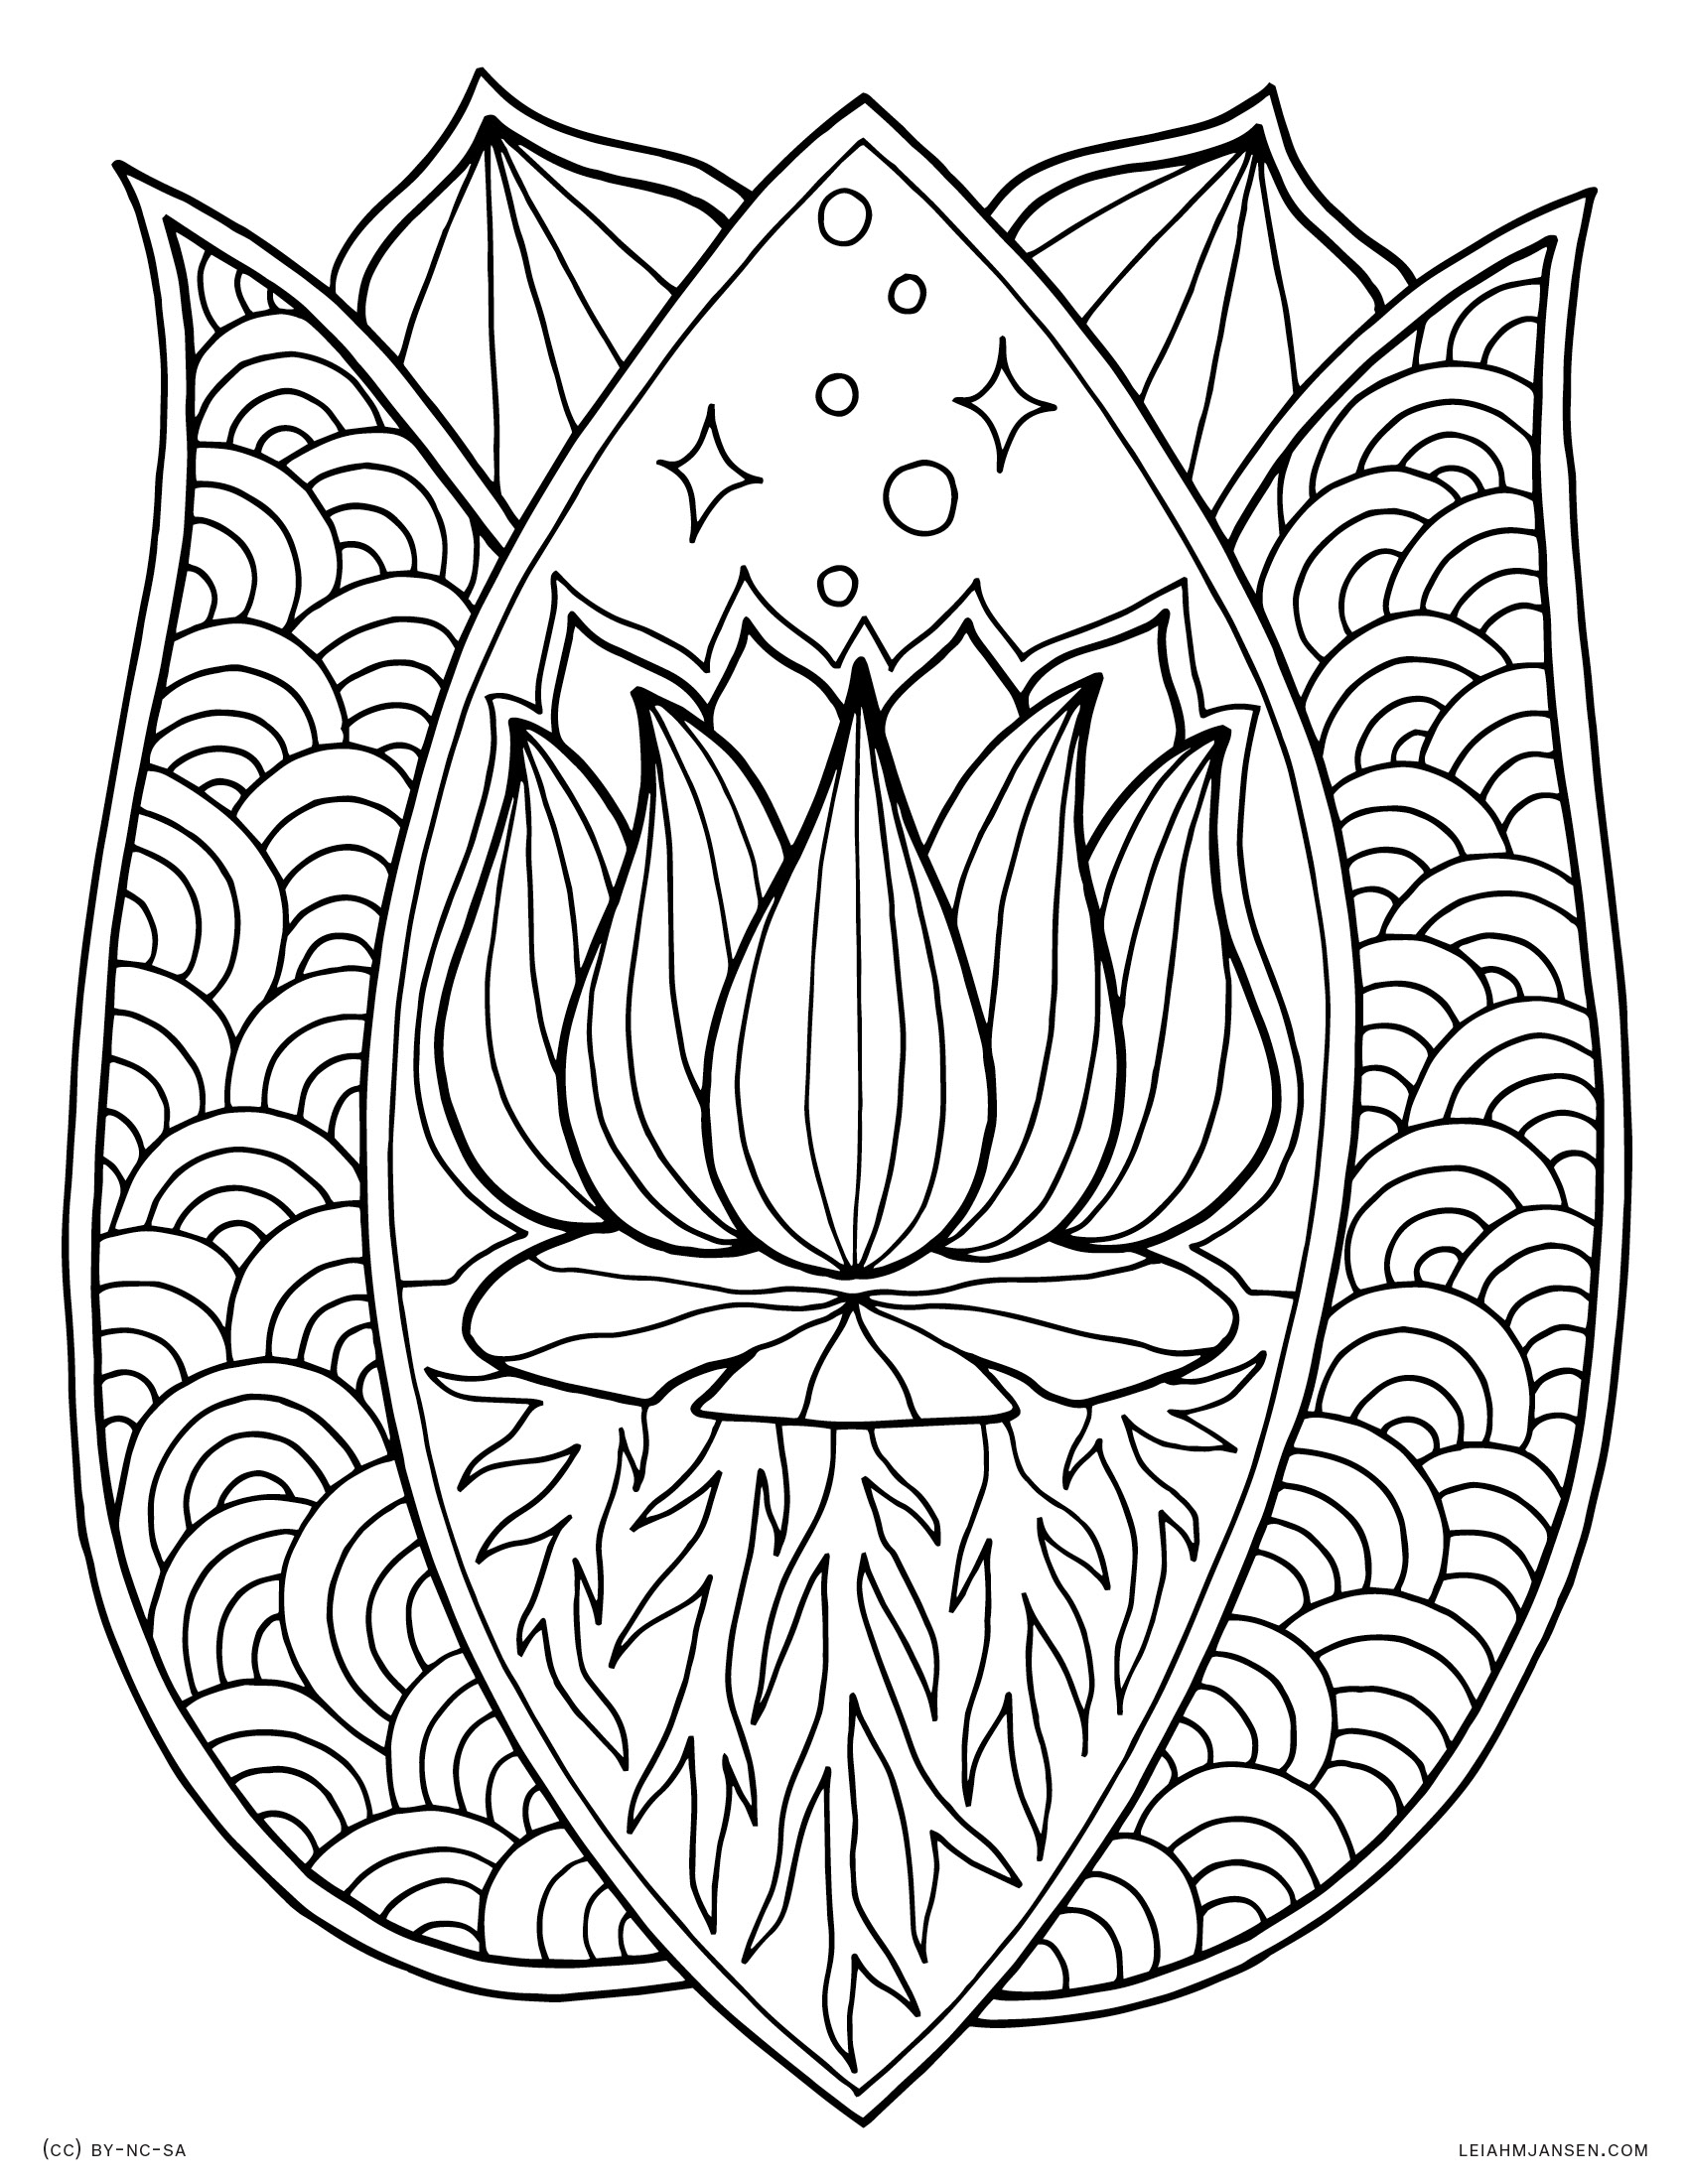 coloring pages free online - photo#46